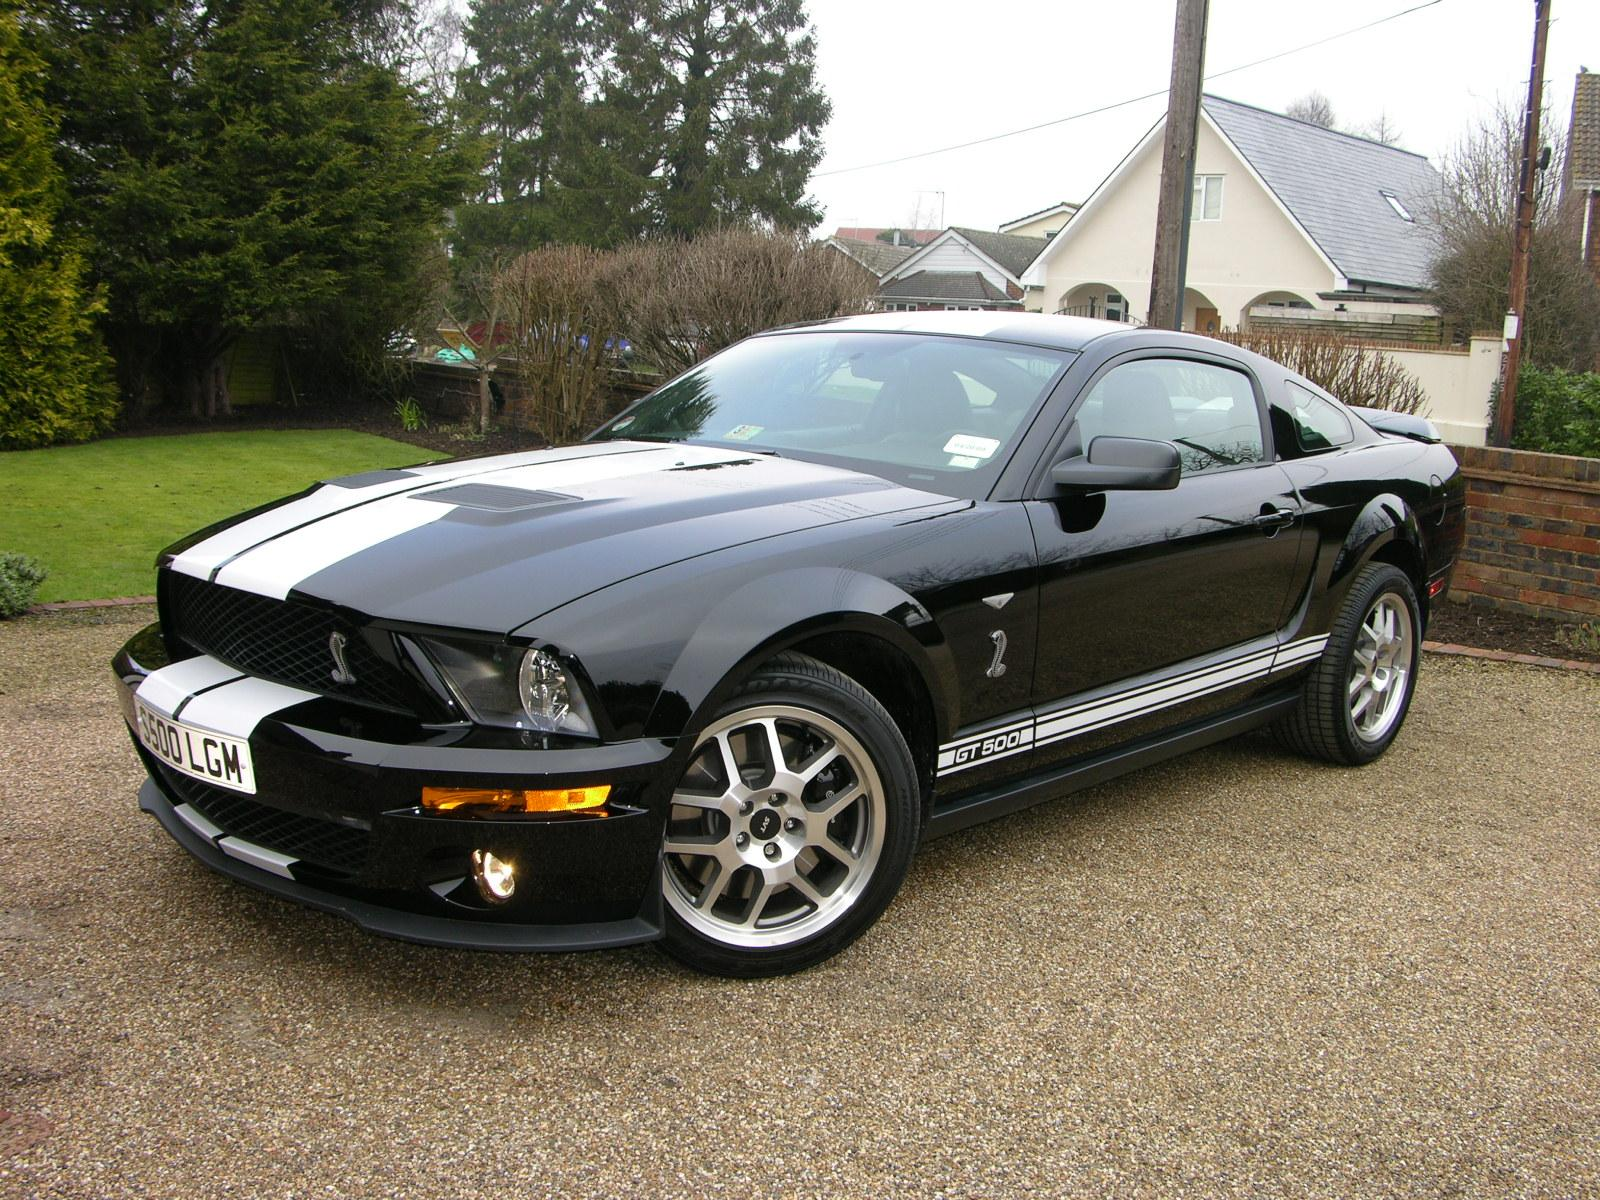 2008 Ford Shelby Gt500 #6